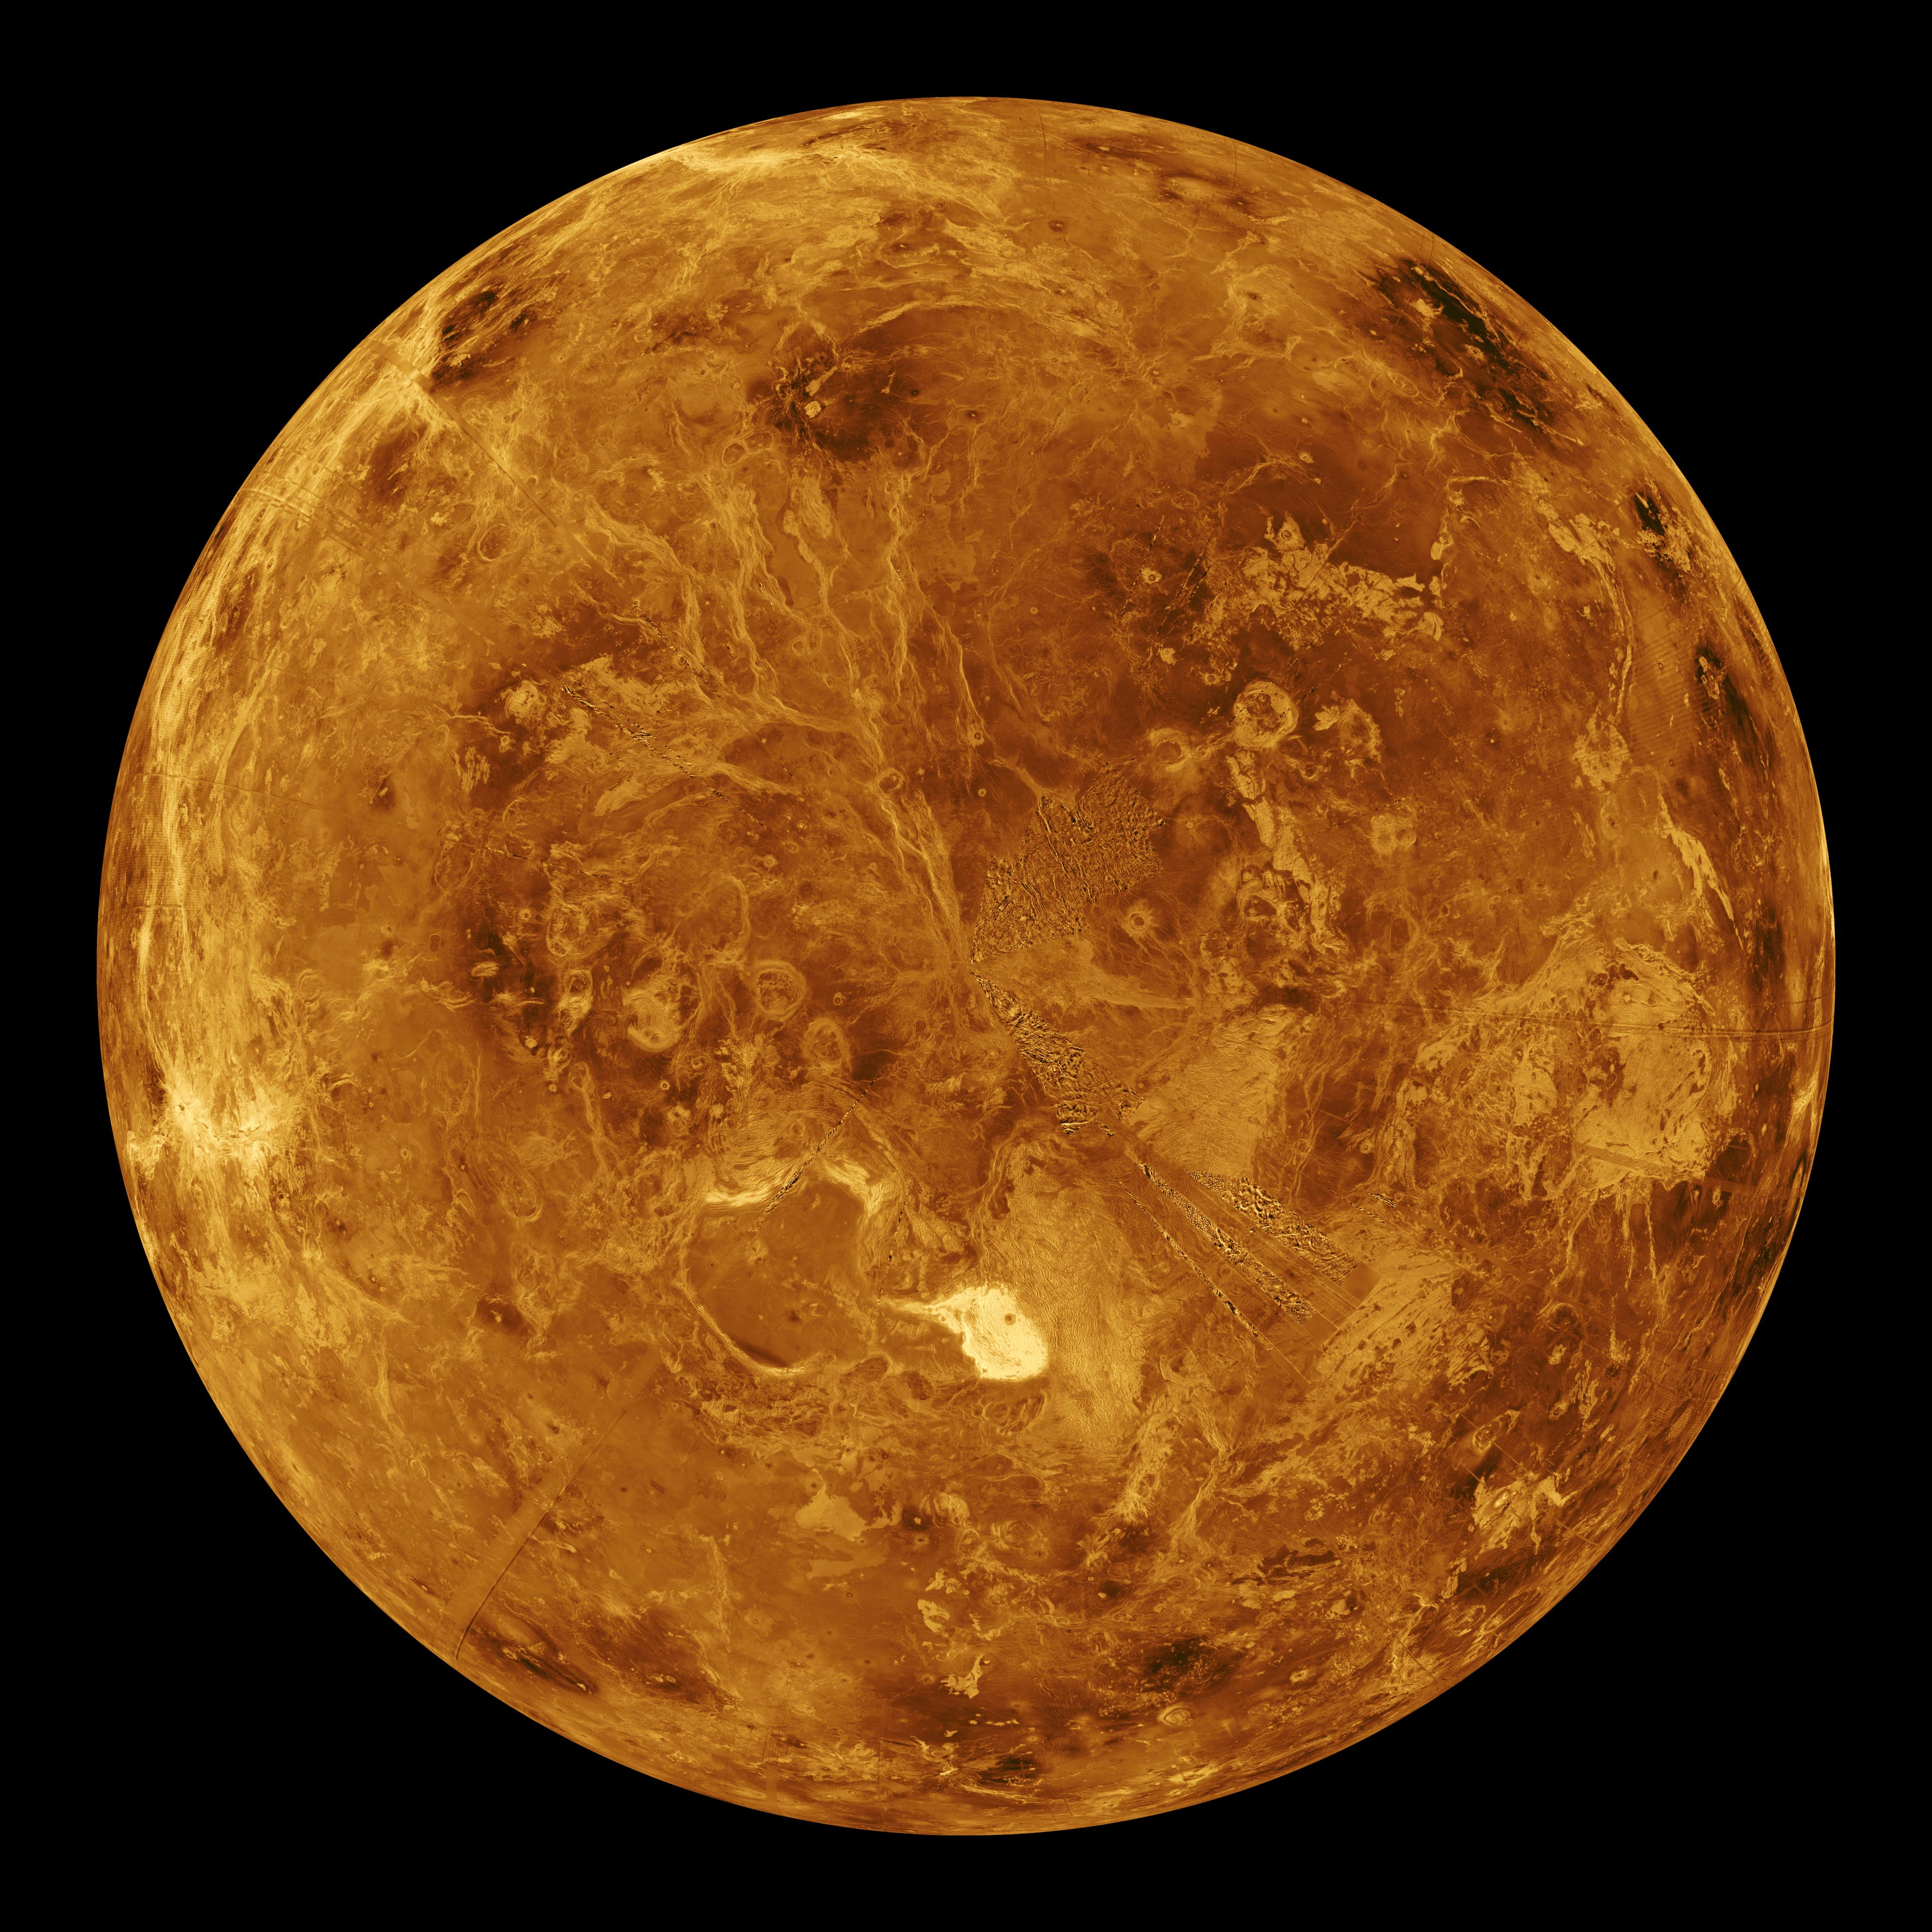 The northern hemisphere is displayed in this global view of the surface of Venus as seen by NASA Magellan spacecraft.